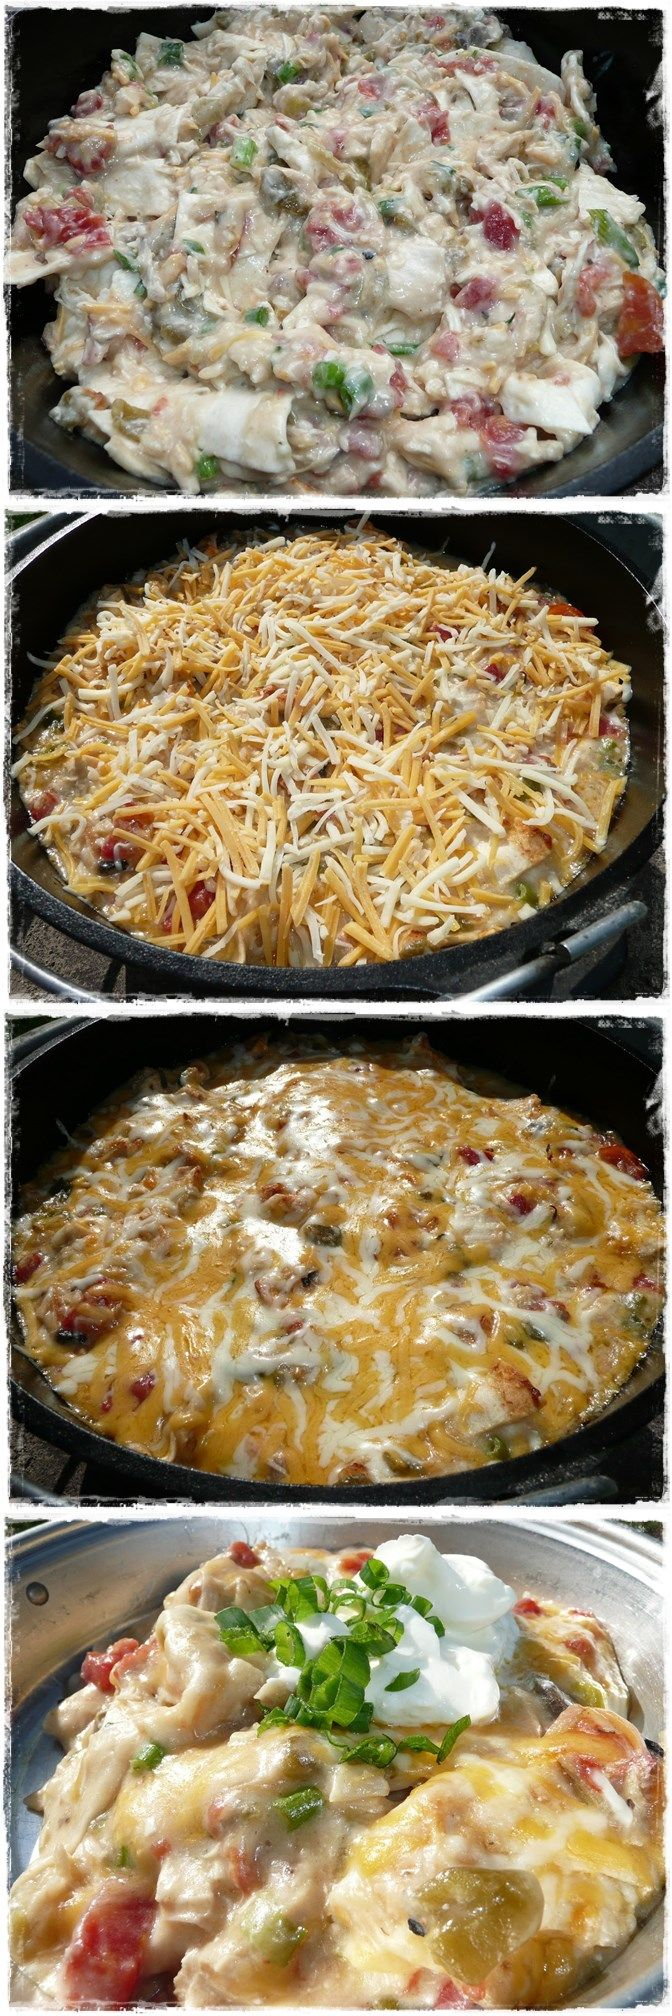 This ranch chicken recipe is a great idea for a family dinner: just toss all the ingredient together in a pan and bake them in the oven and you got yoursel